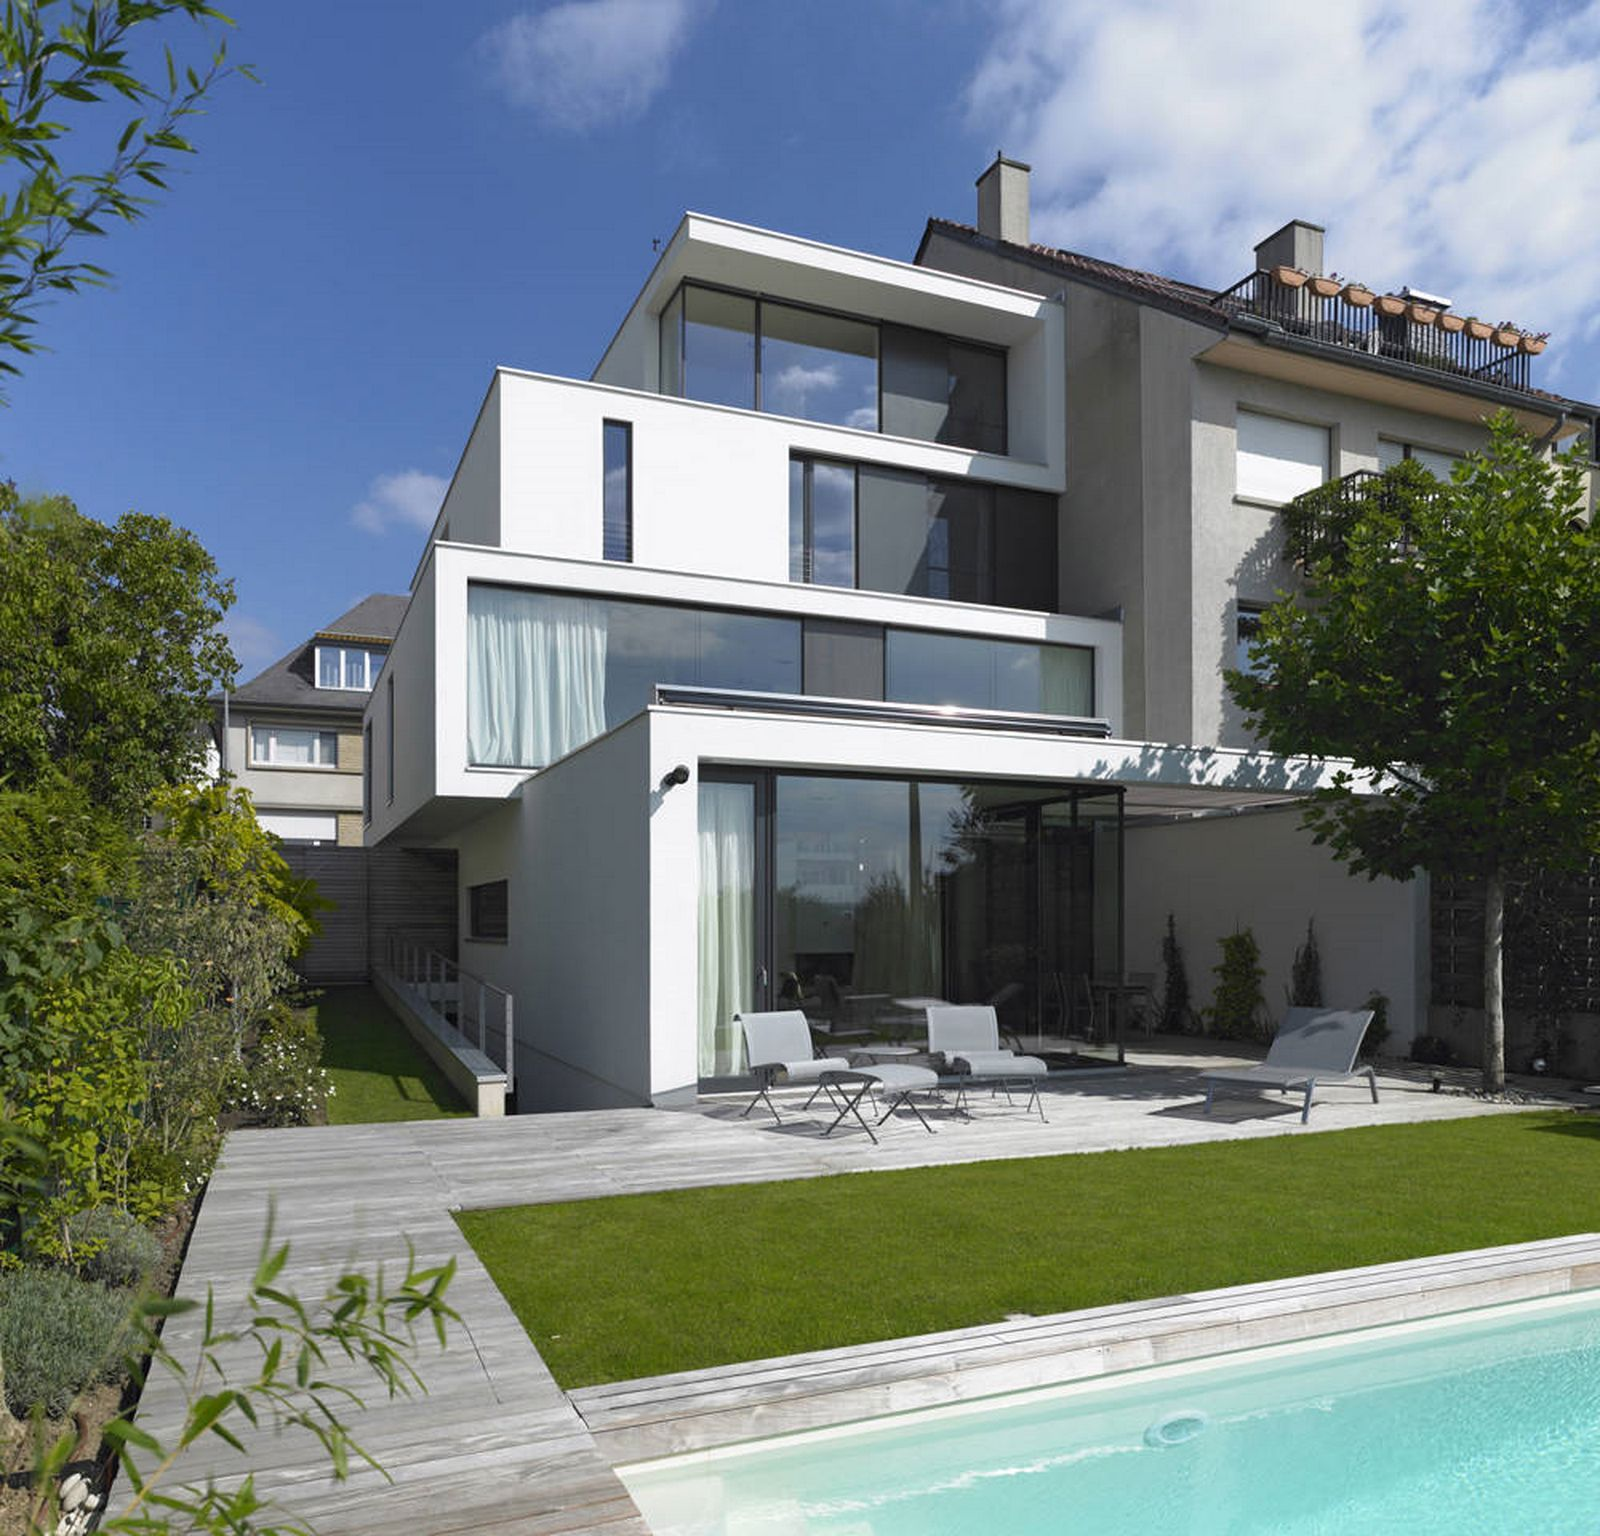 Modern low energy house design swimming pool24 contemporary pool houses oghhk com